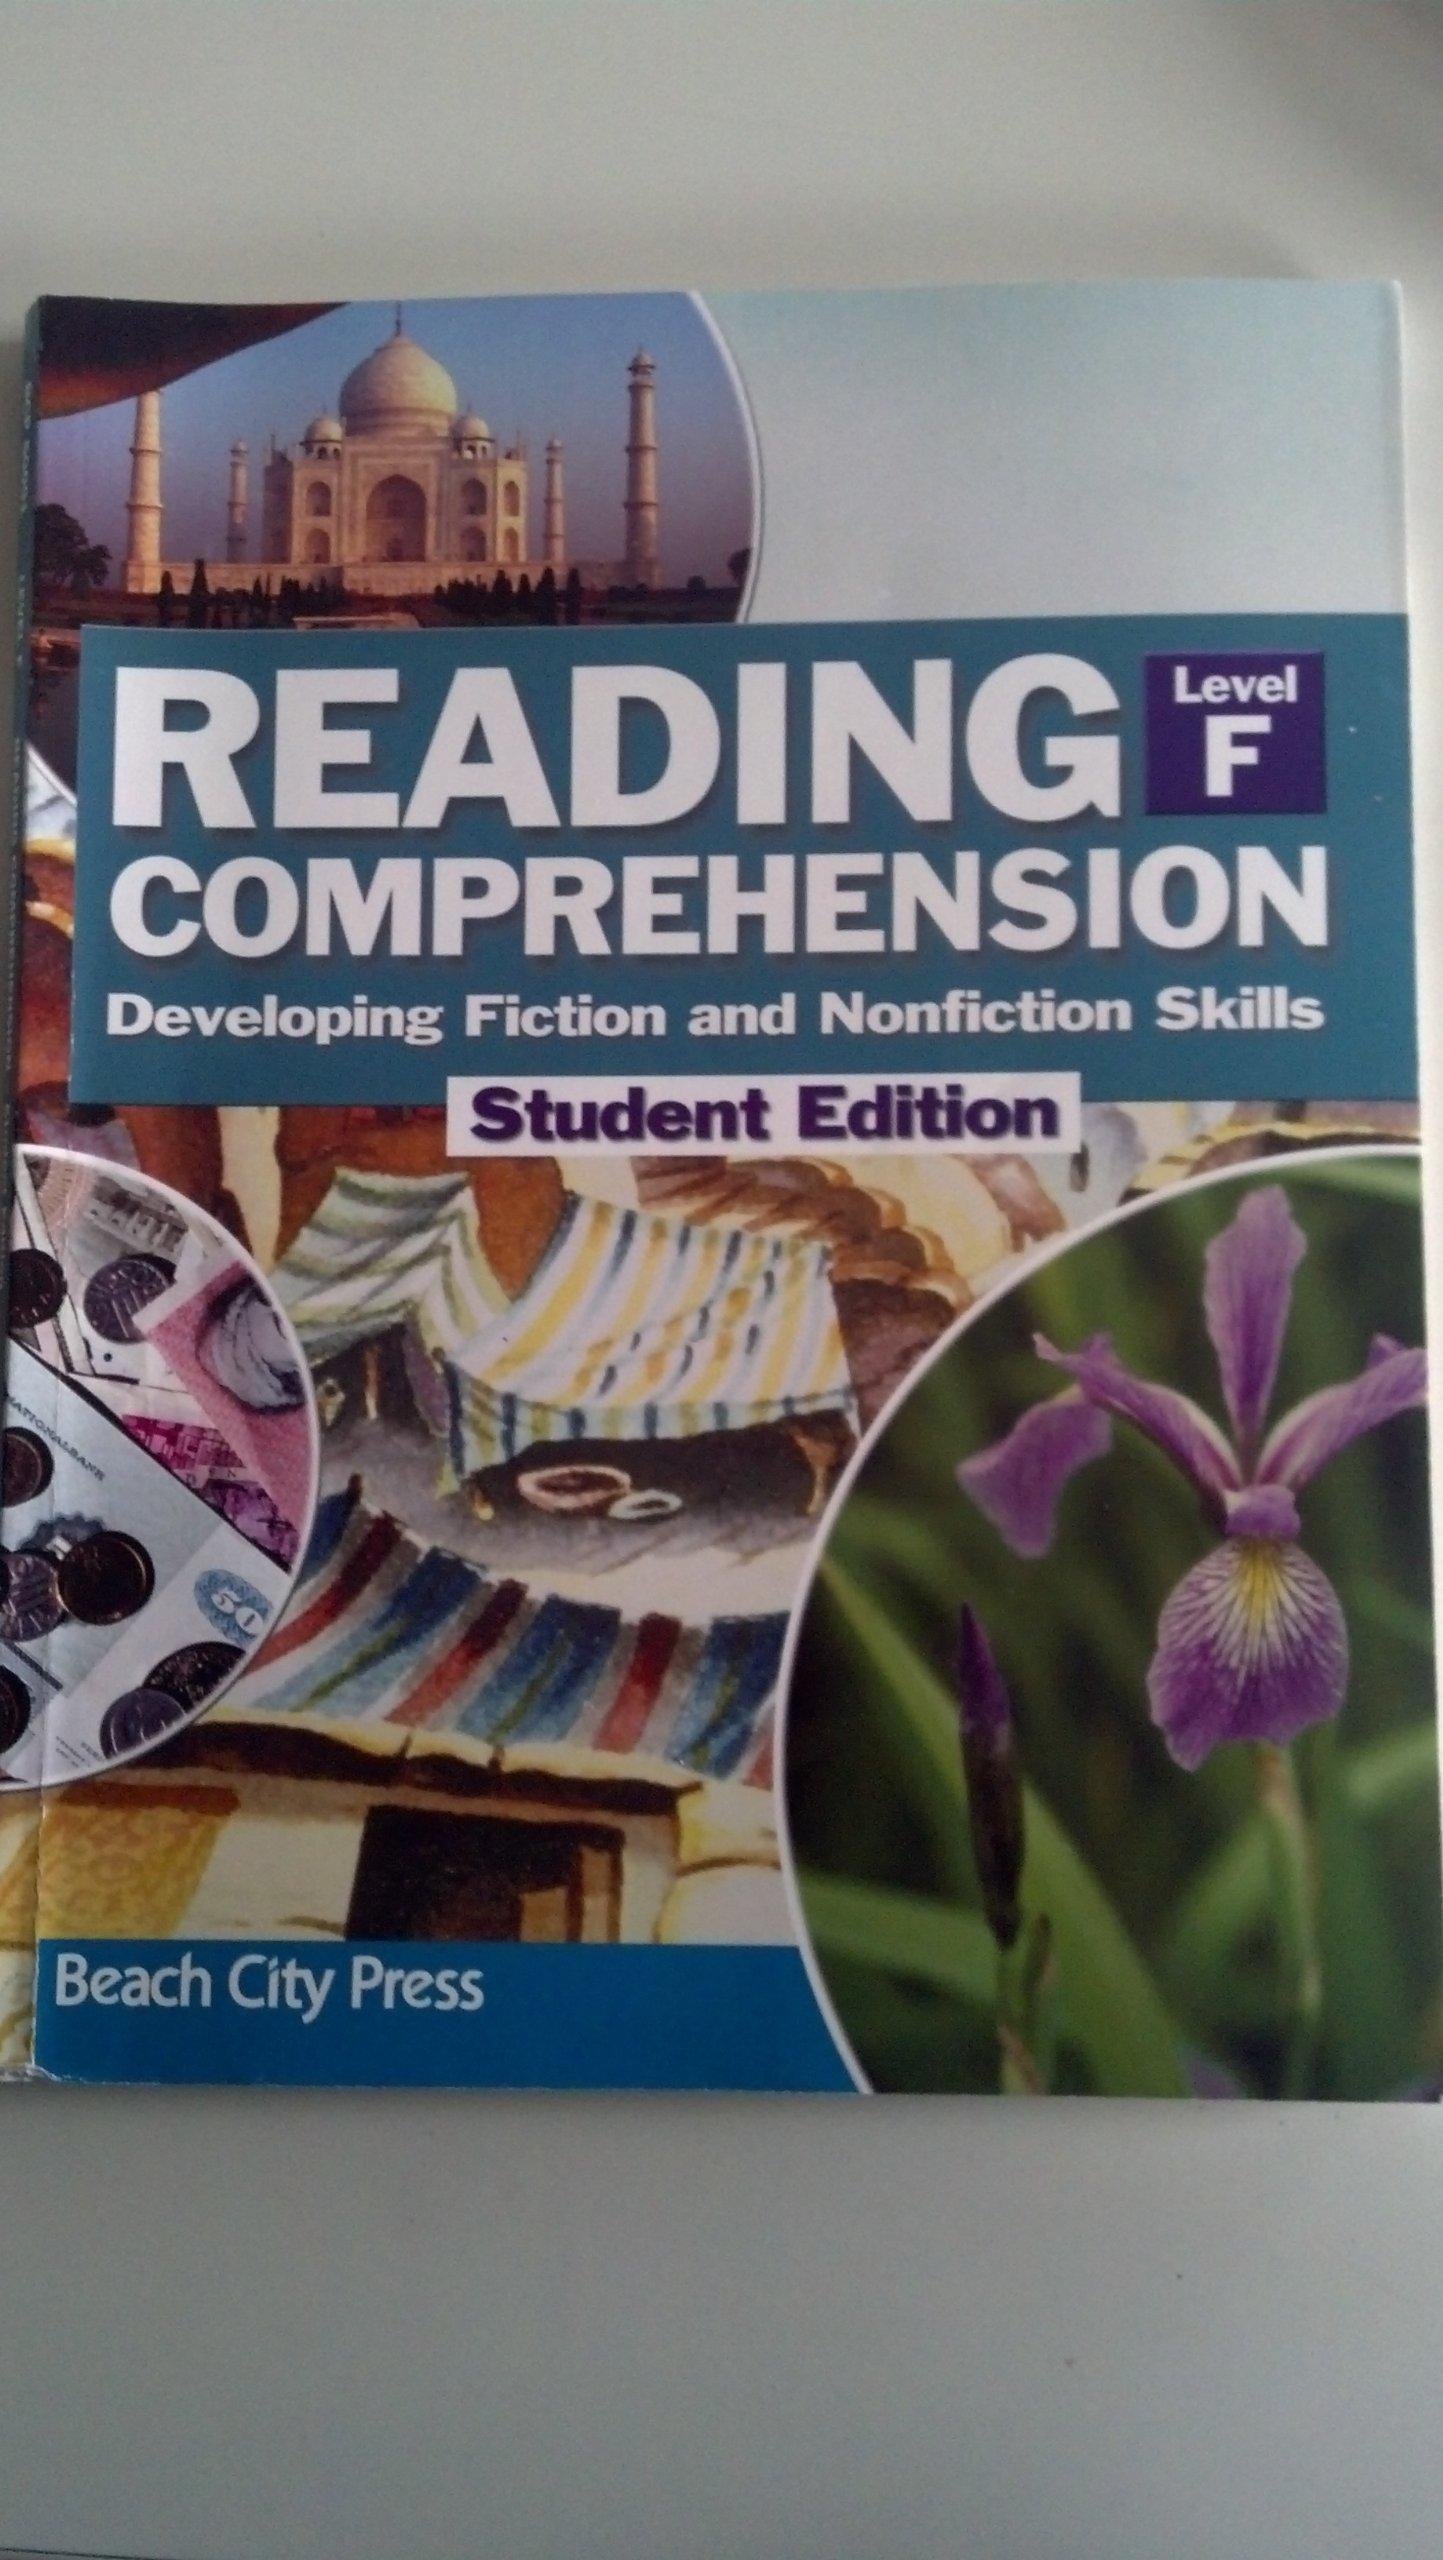 Read Online Reading Comprehension - Developing Fiction and Nonfiction Skills - Student Edition - Level F ebook